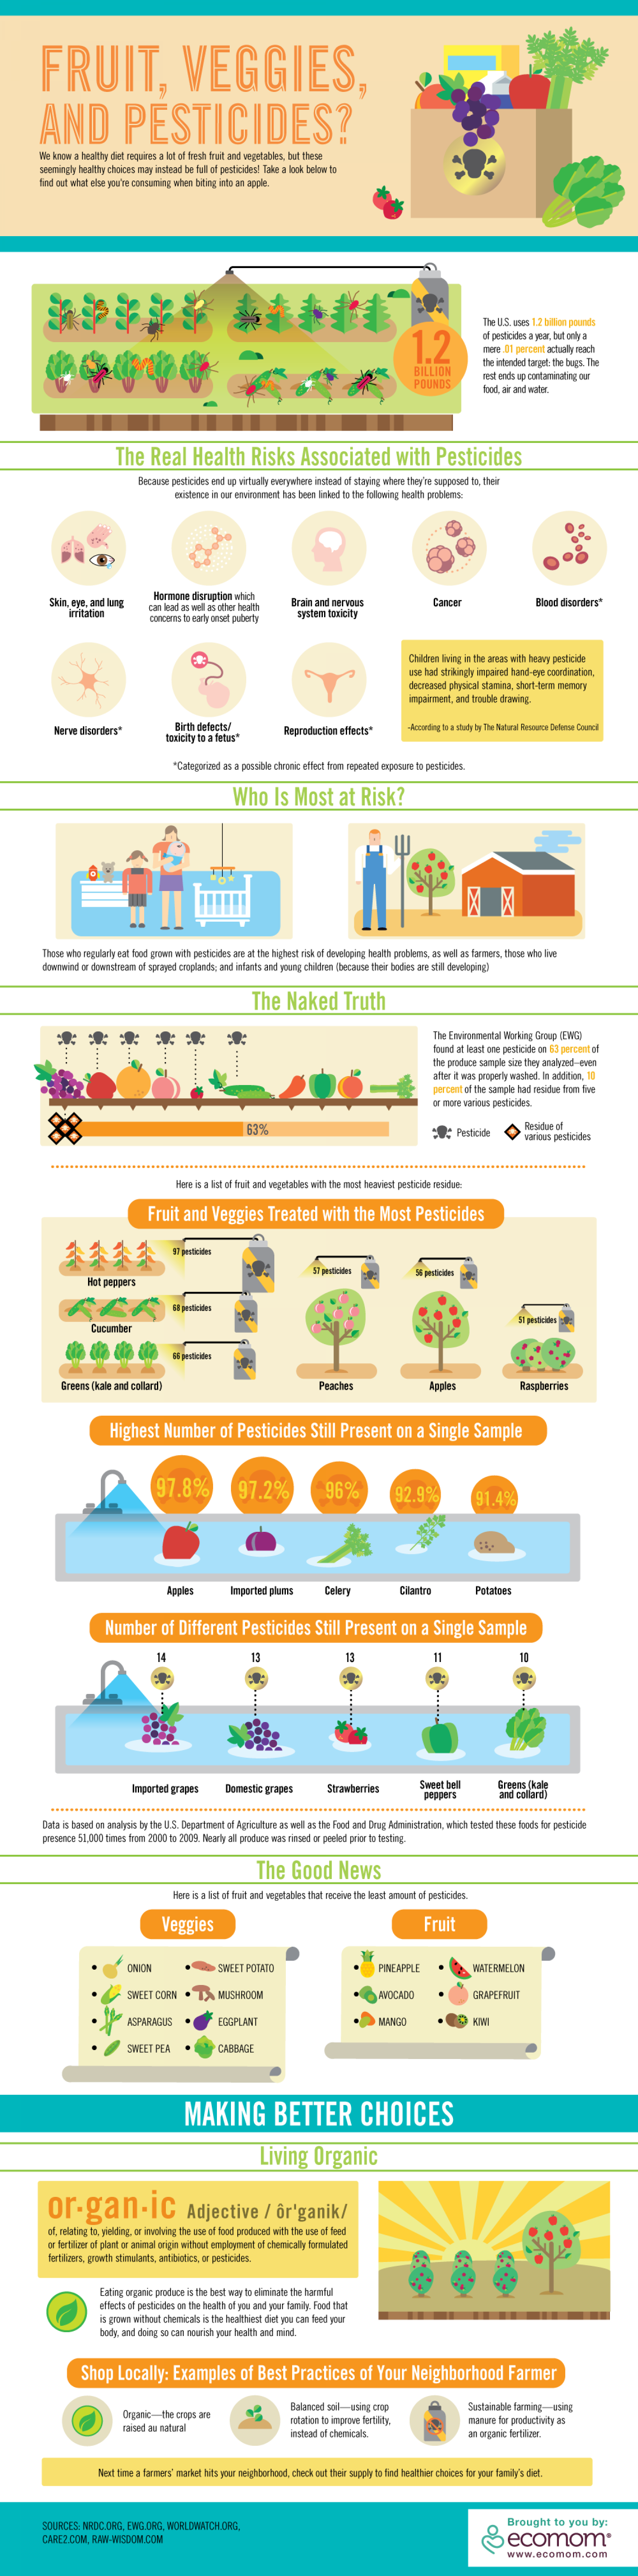 Fruit, Veggies and Pesticides Infographic